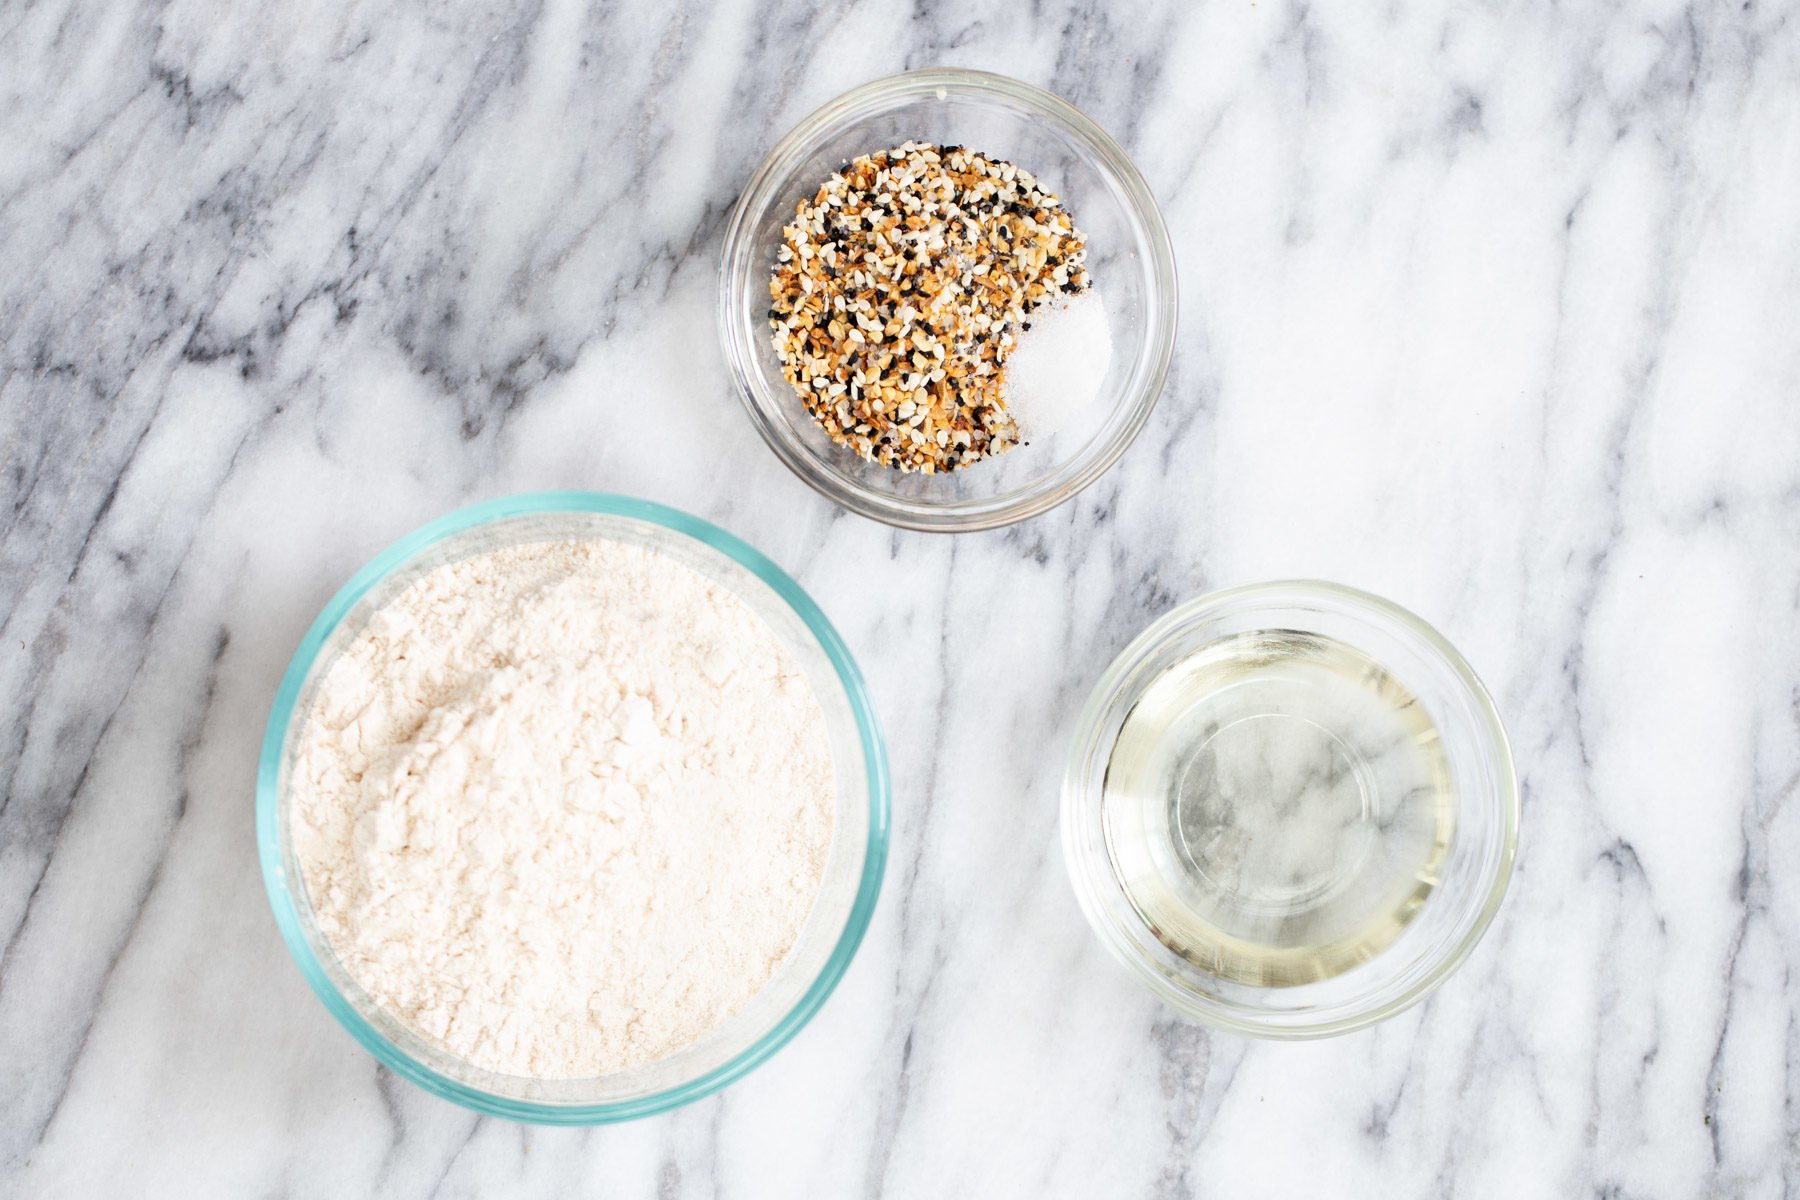 ingredients needed for making everything bagel crackers